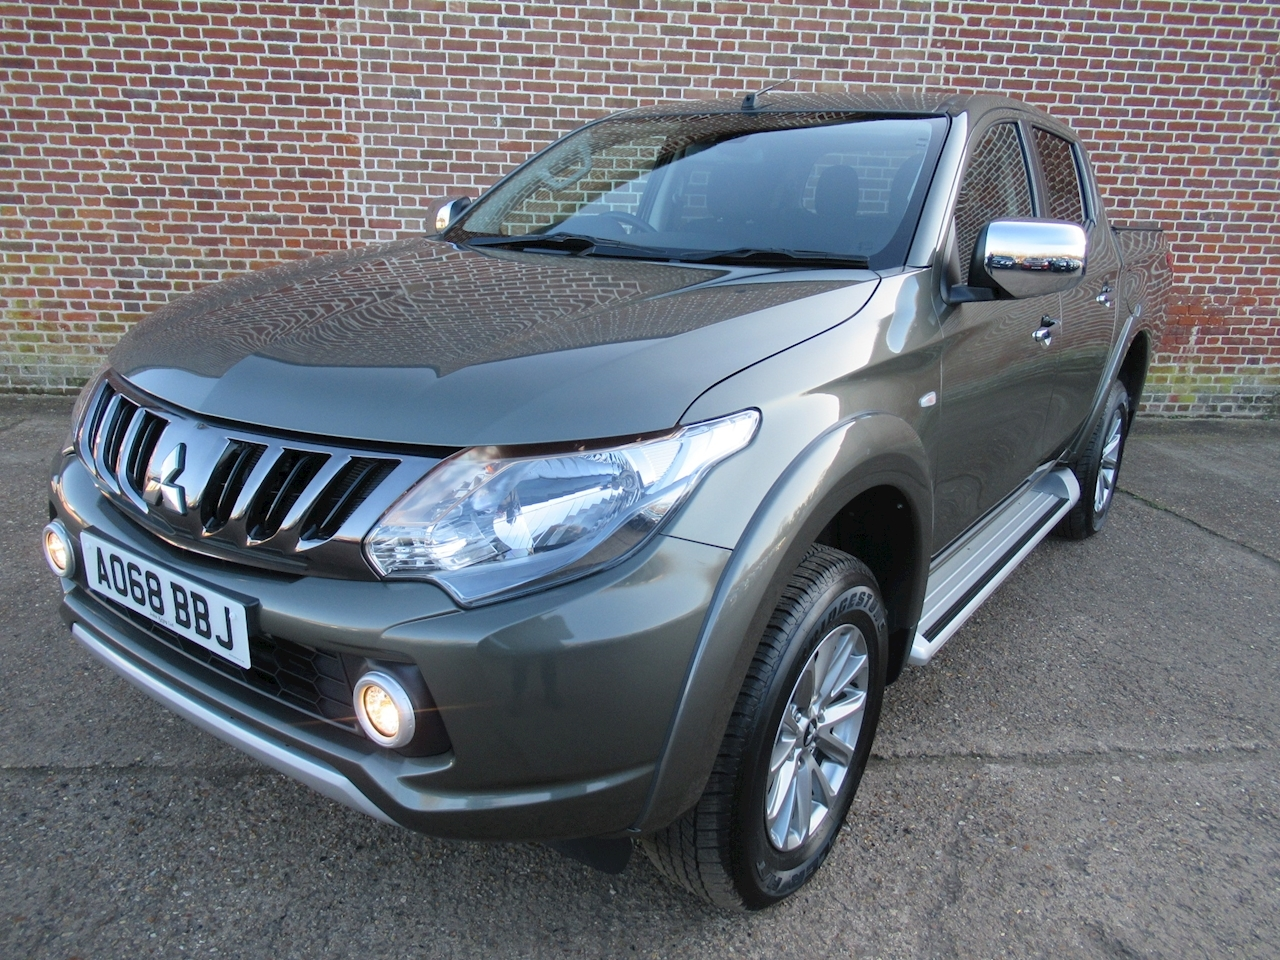 Mitsubishi L200 Di-D 4Wd Titan Dcb 2.4 4dr Pick-Up Manual Diesel